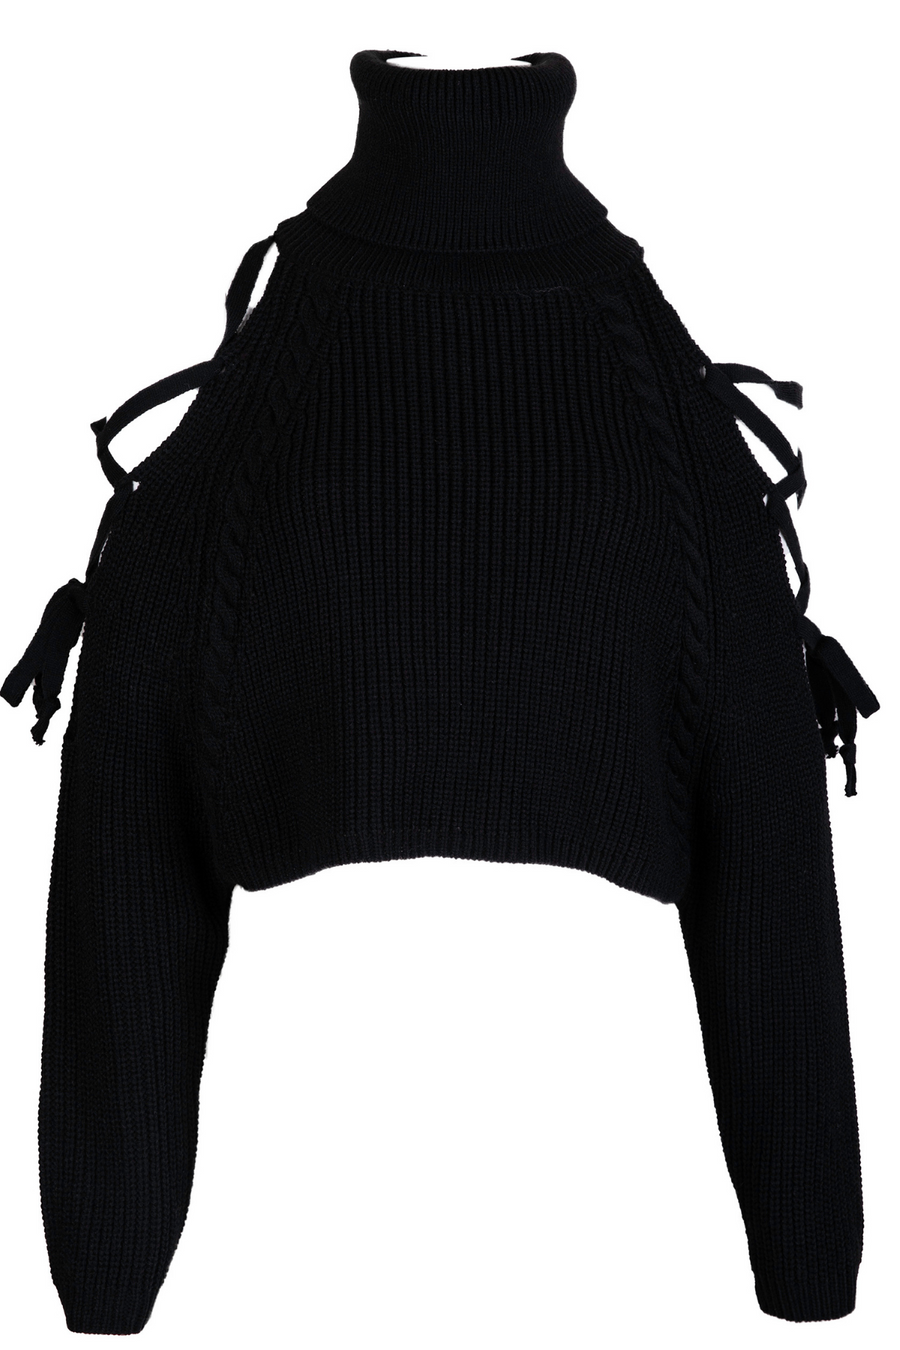 AOTC Mina Sweater Black